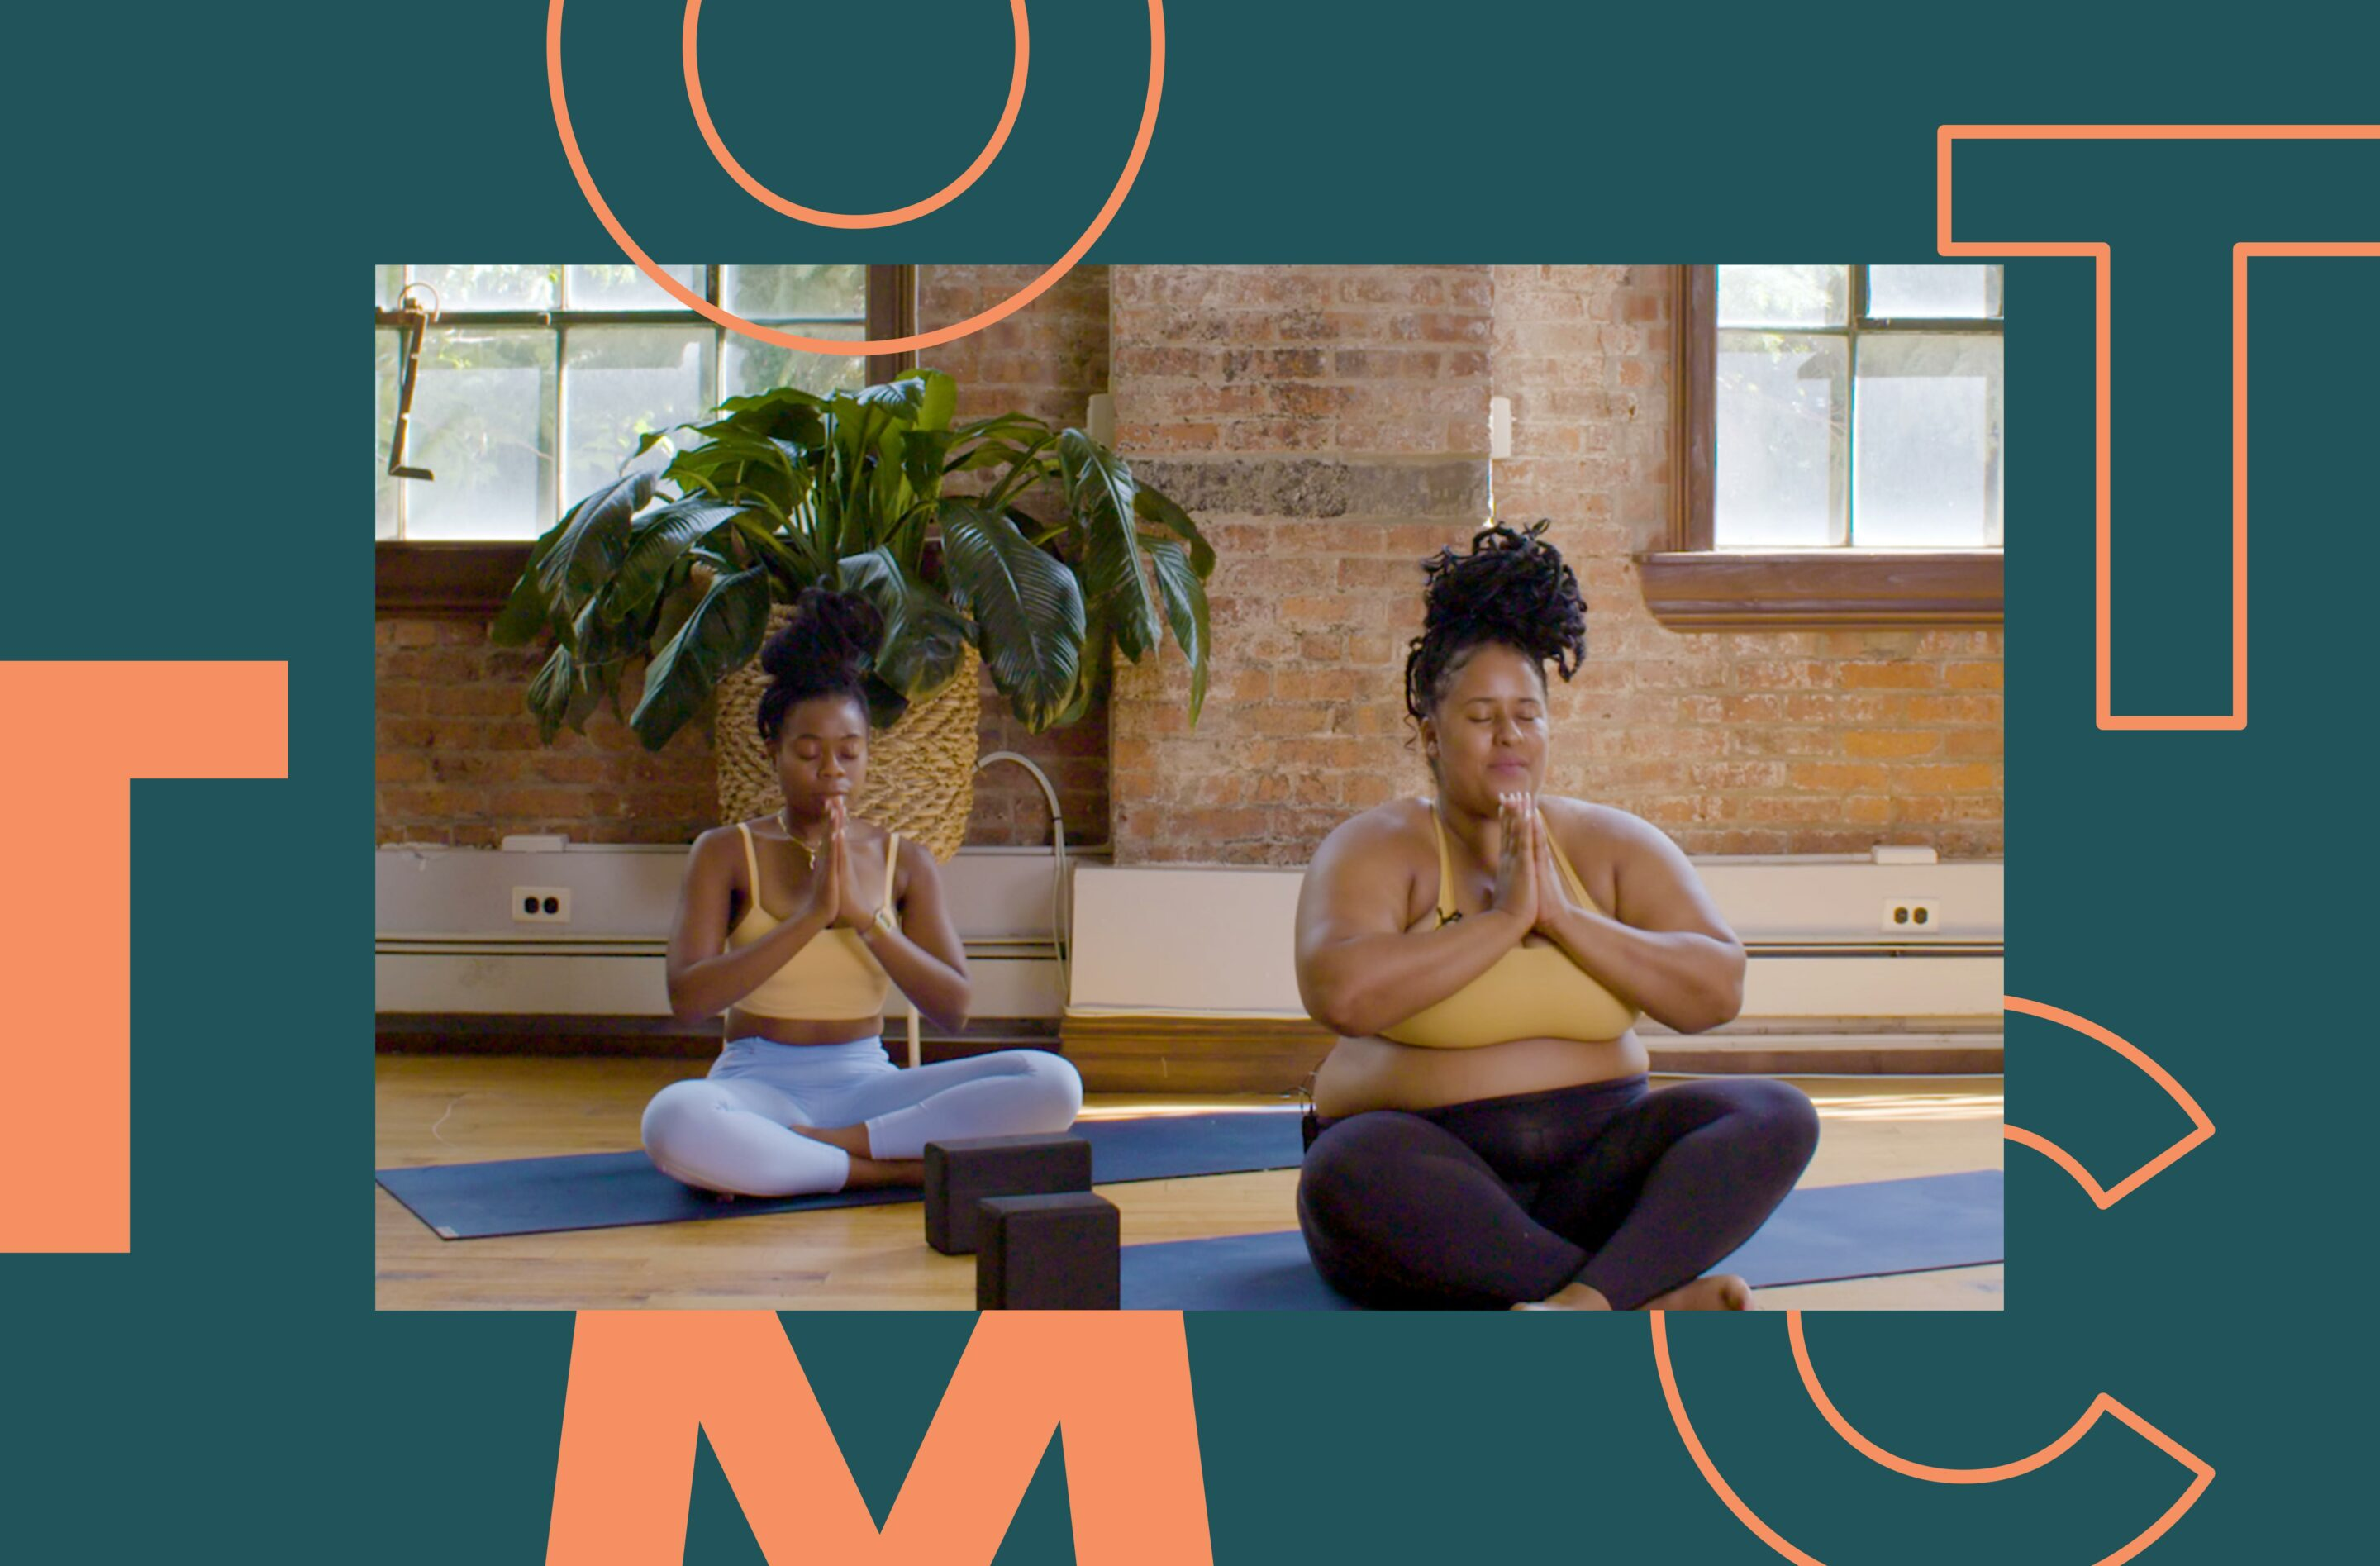 Thumbnail for Unwind Your Body and Mind in This Chill Pill of a 20-Minute Yoga Class